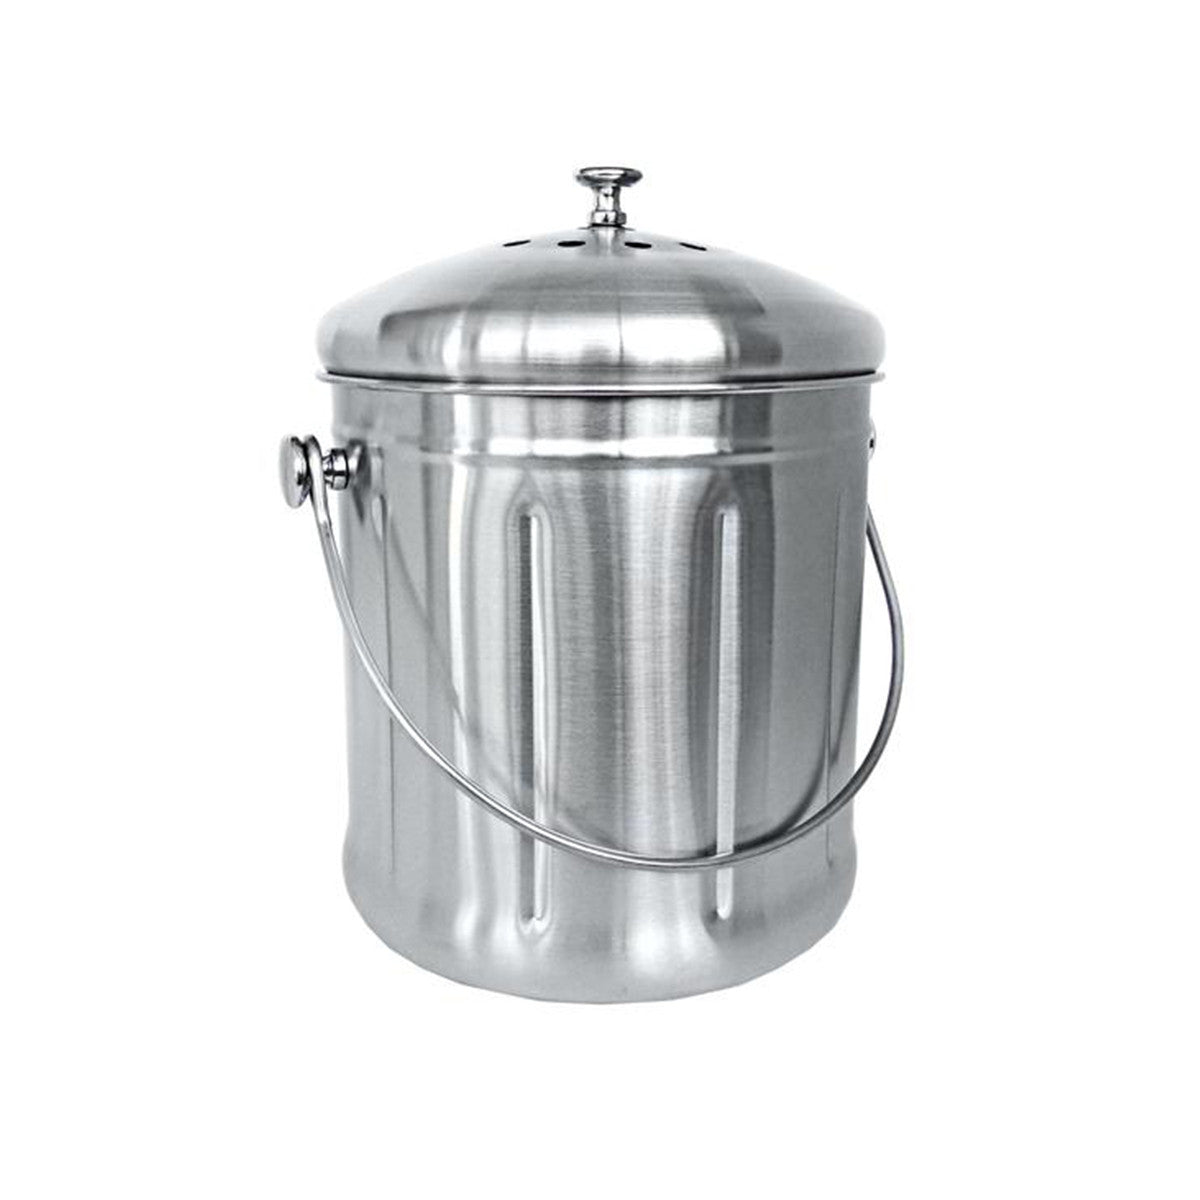 Stainless Steel Kitchen Compost Bin U2013 1.8 Gallon